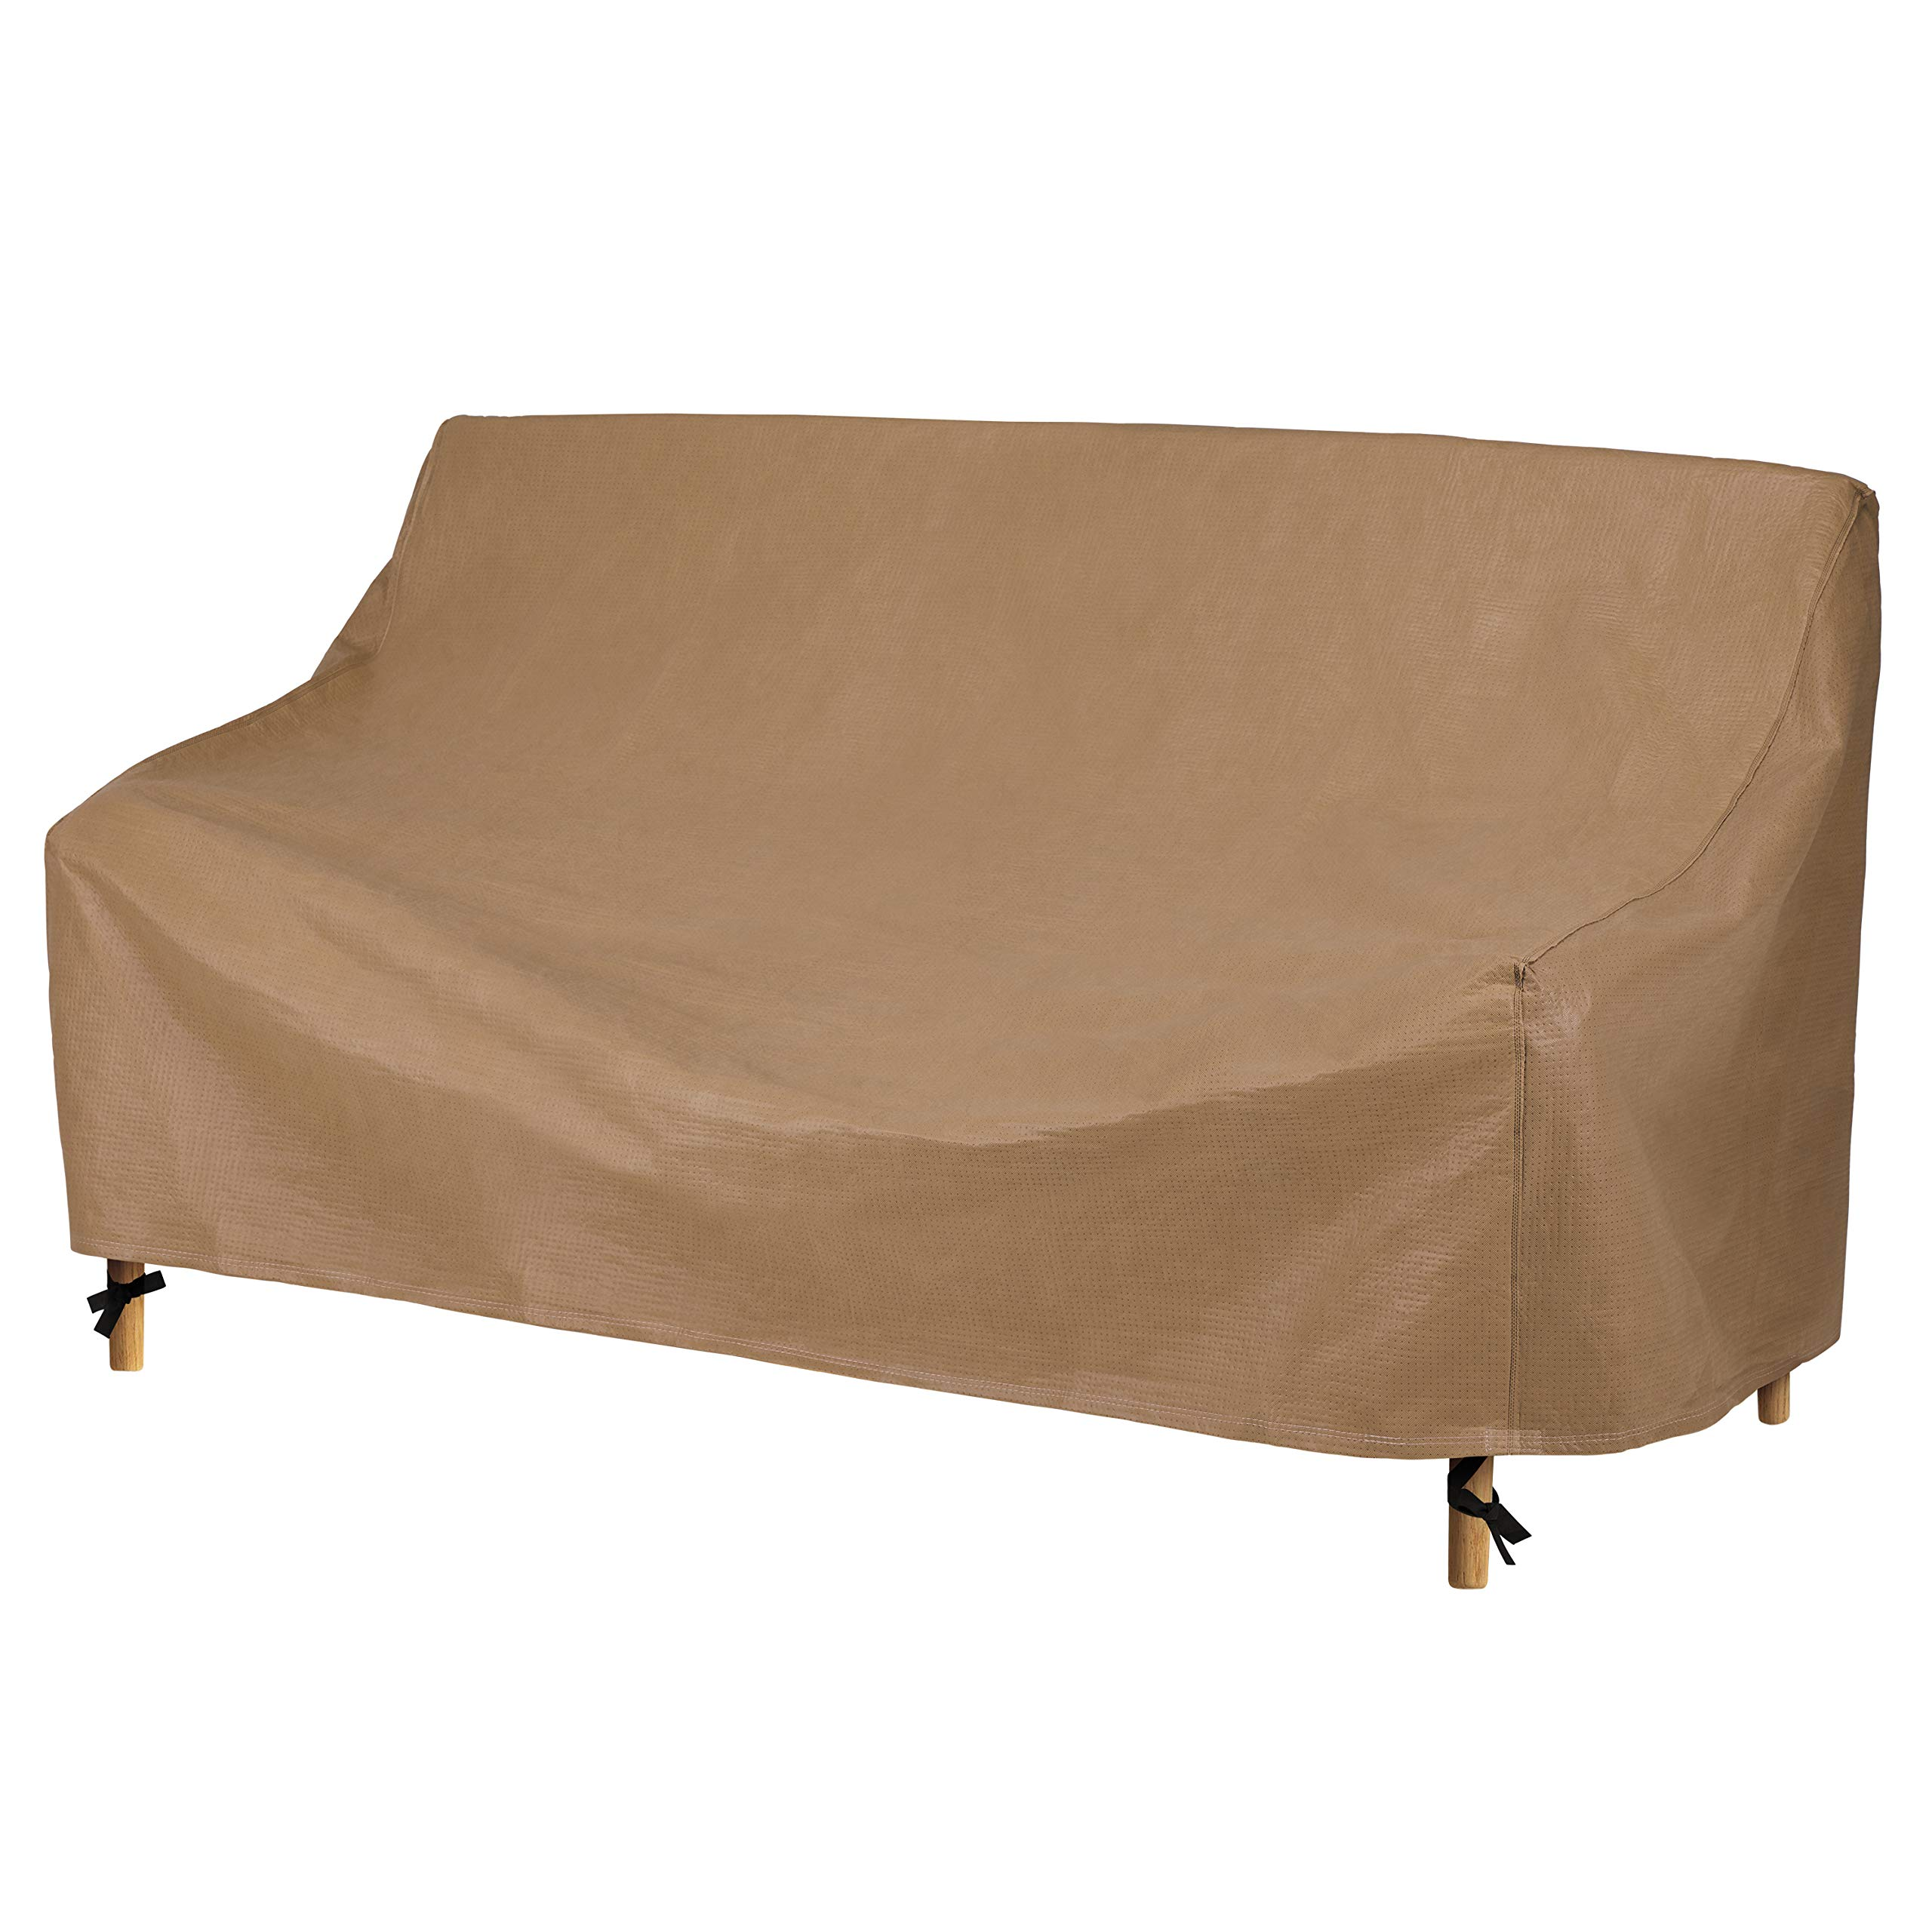 Duck Covers Essential Patio Sofa Cover, 79-Inch by Duck Covers